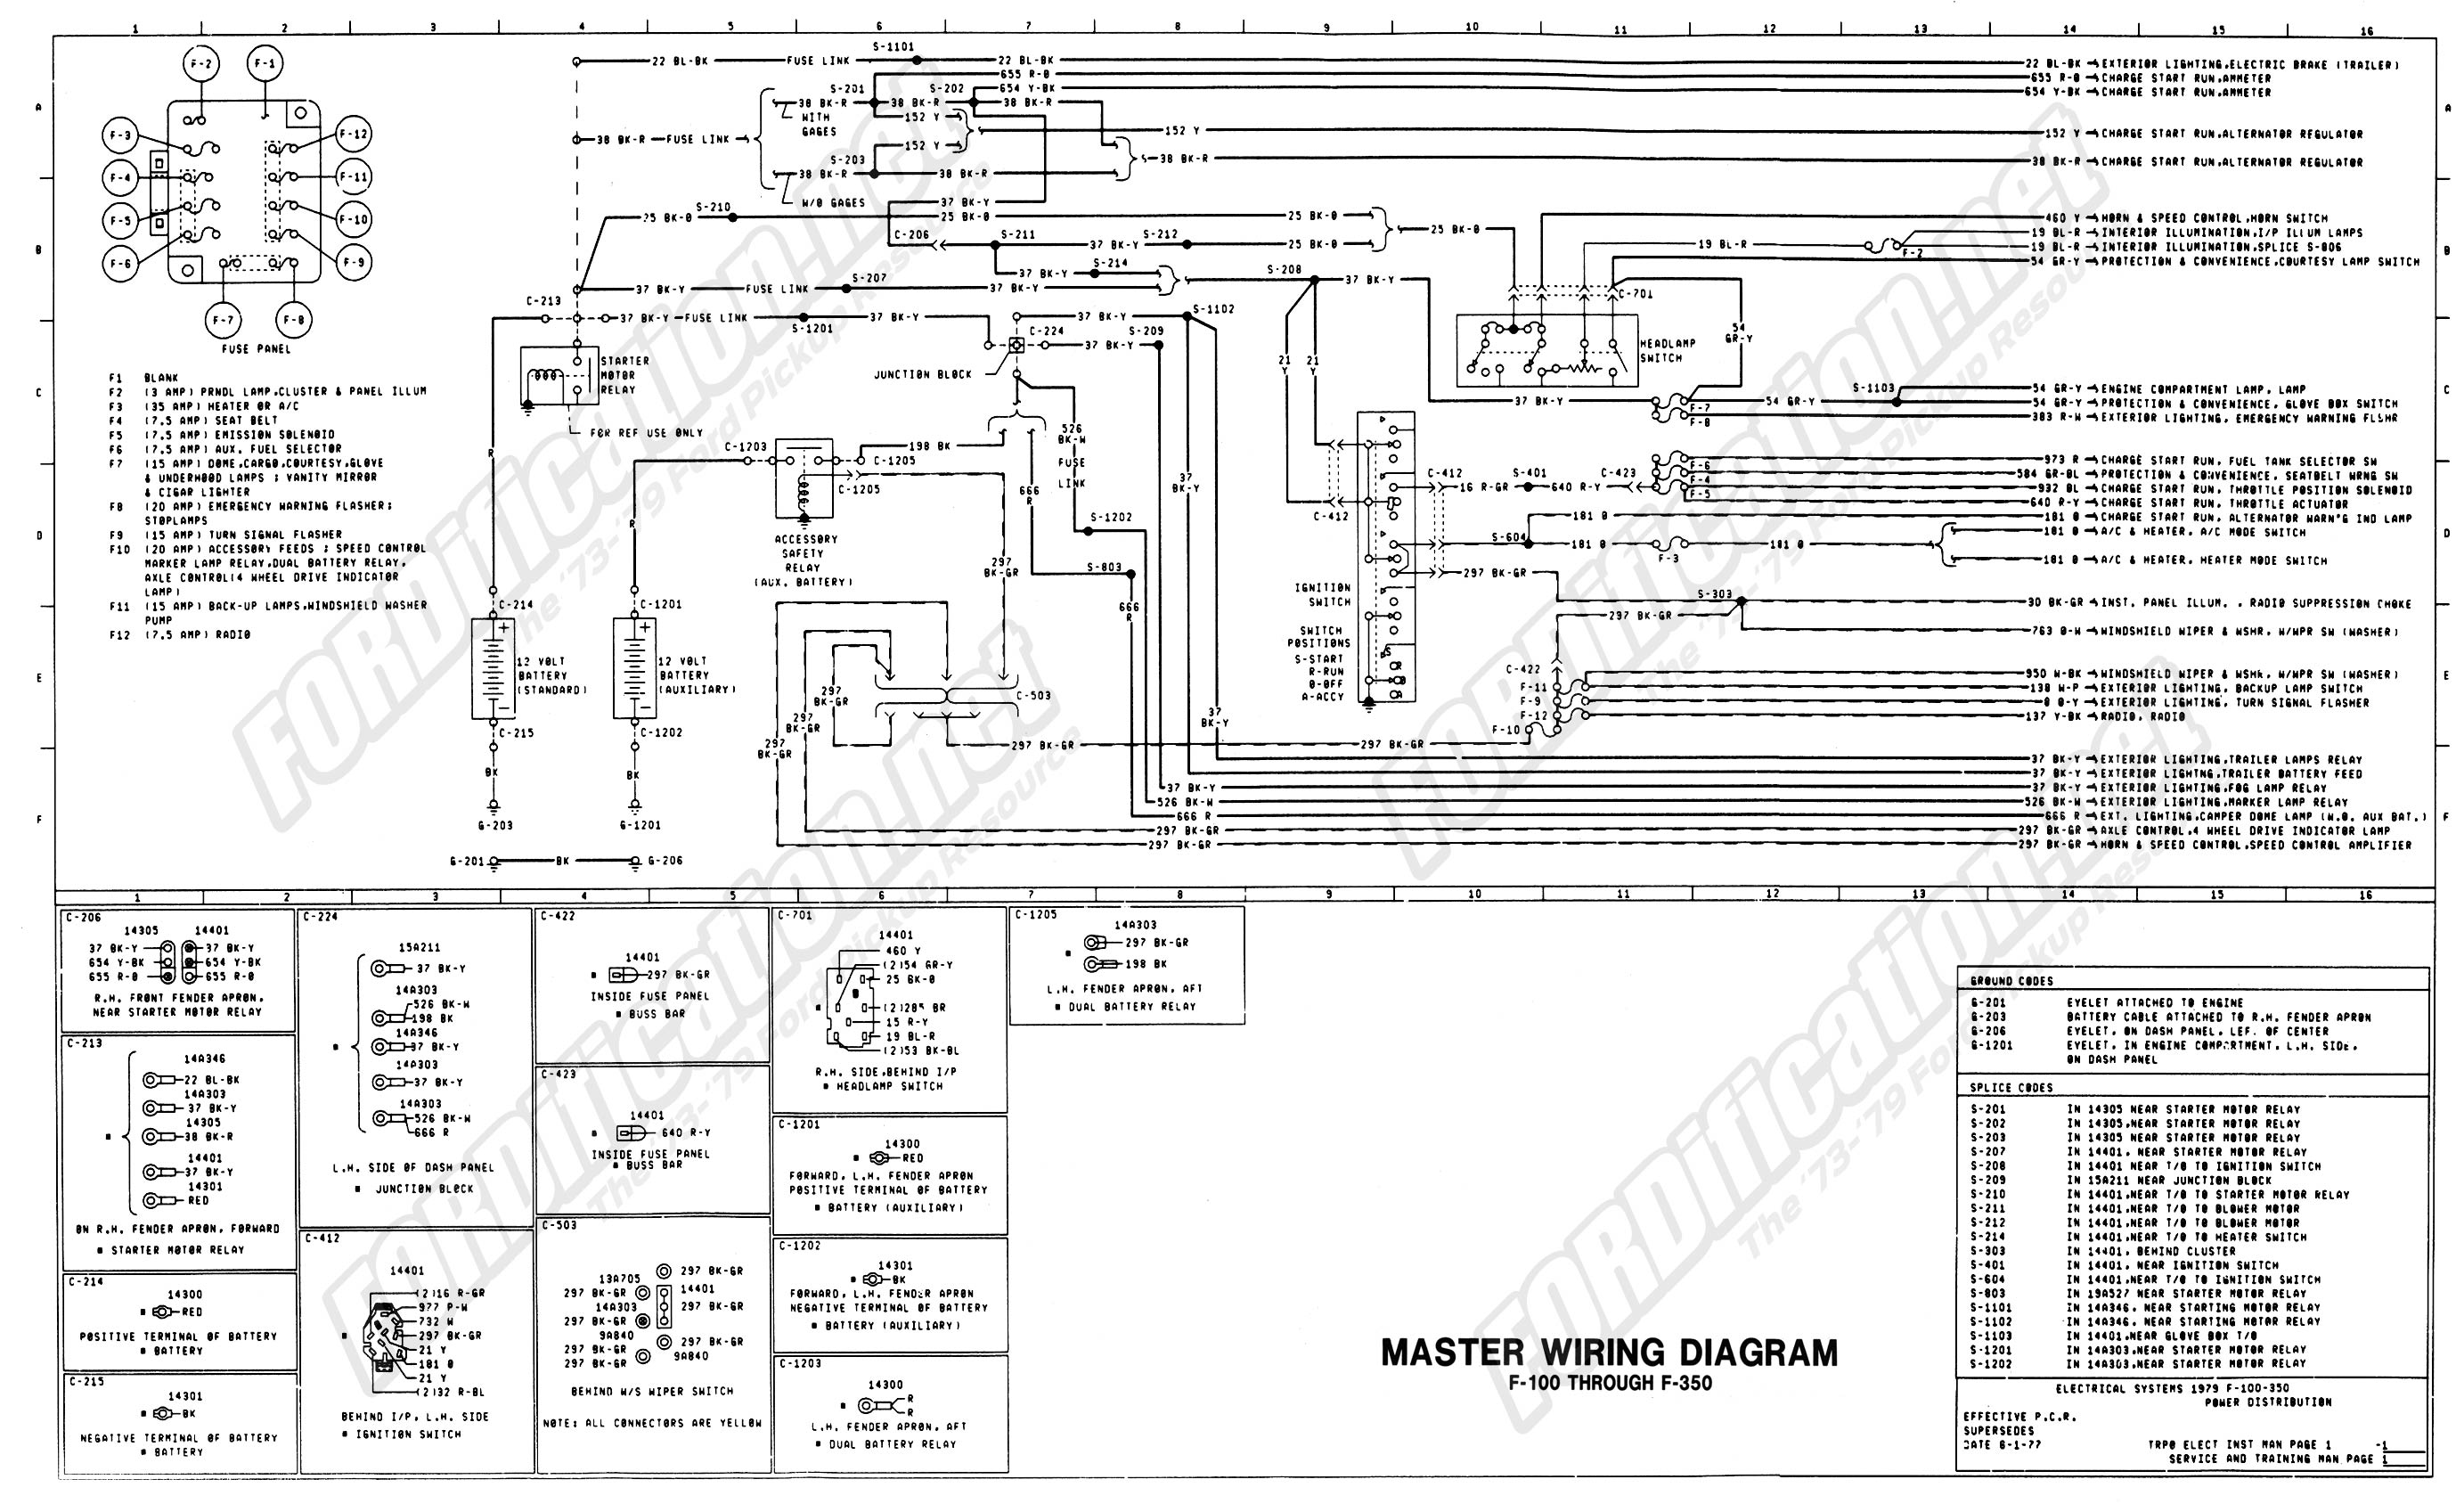 wiring_79master_1of9 electrical wiring diagram of ford f100 all about wiring diagrams 1970 ford torino wiring diagram at honlapkeszites.co